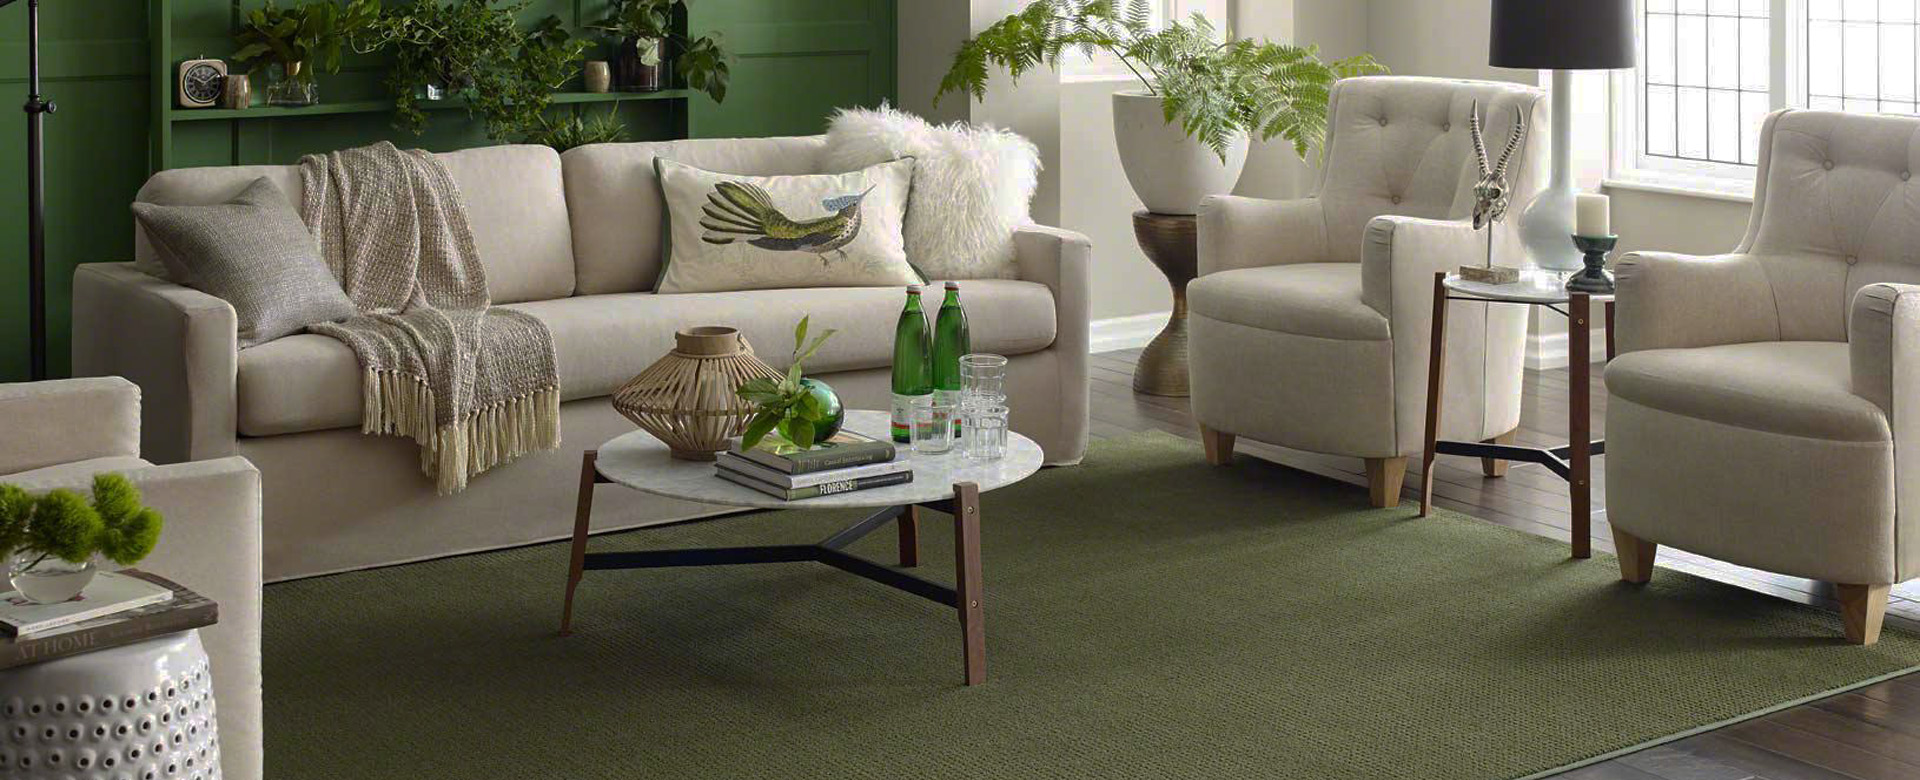 rugs home design visalia ca - 28 images - carpet visalia carpet ...